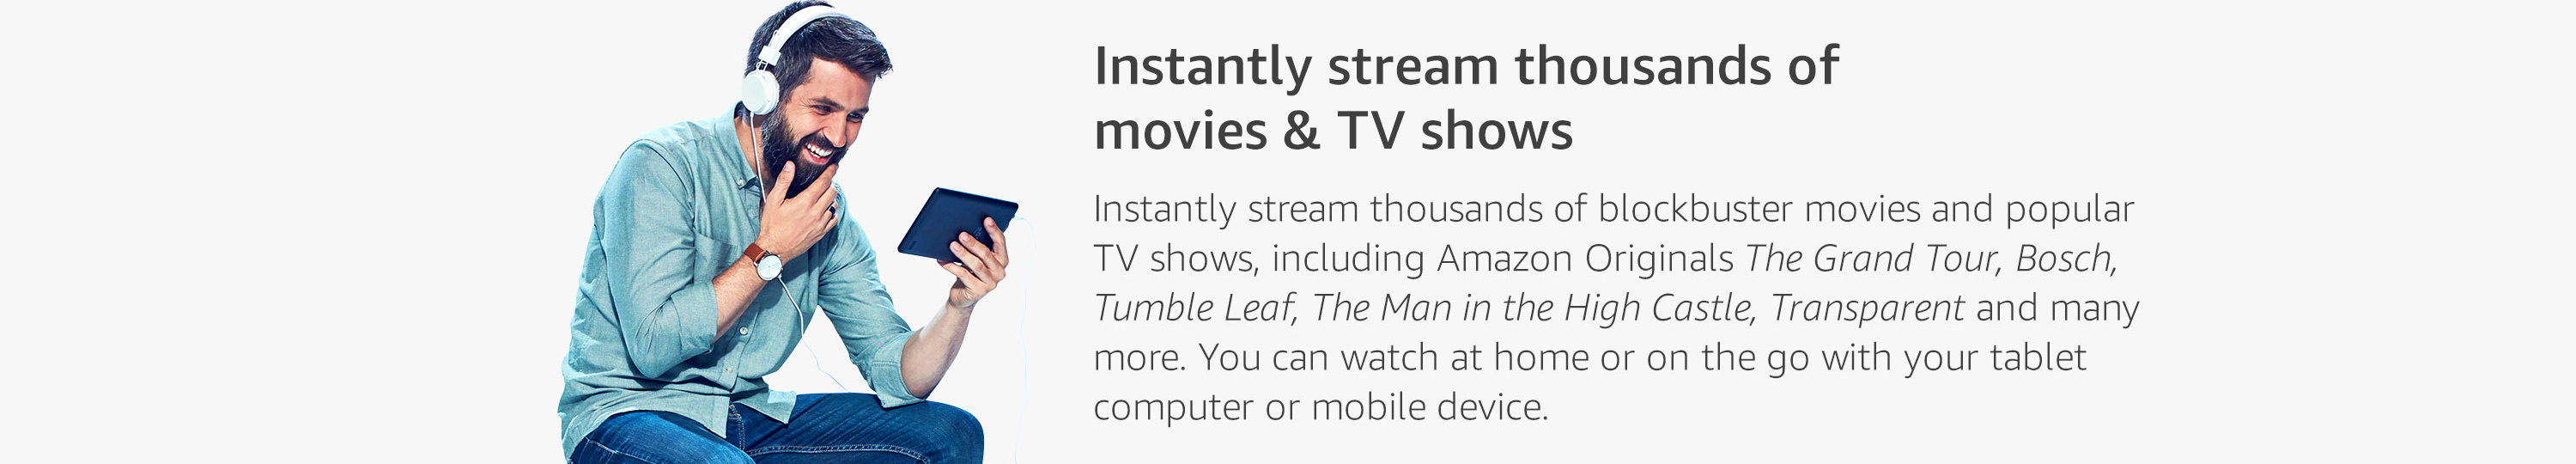 Stream thousands of movies and TV shows